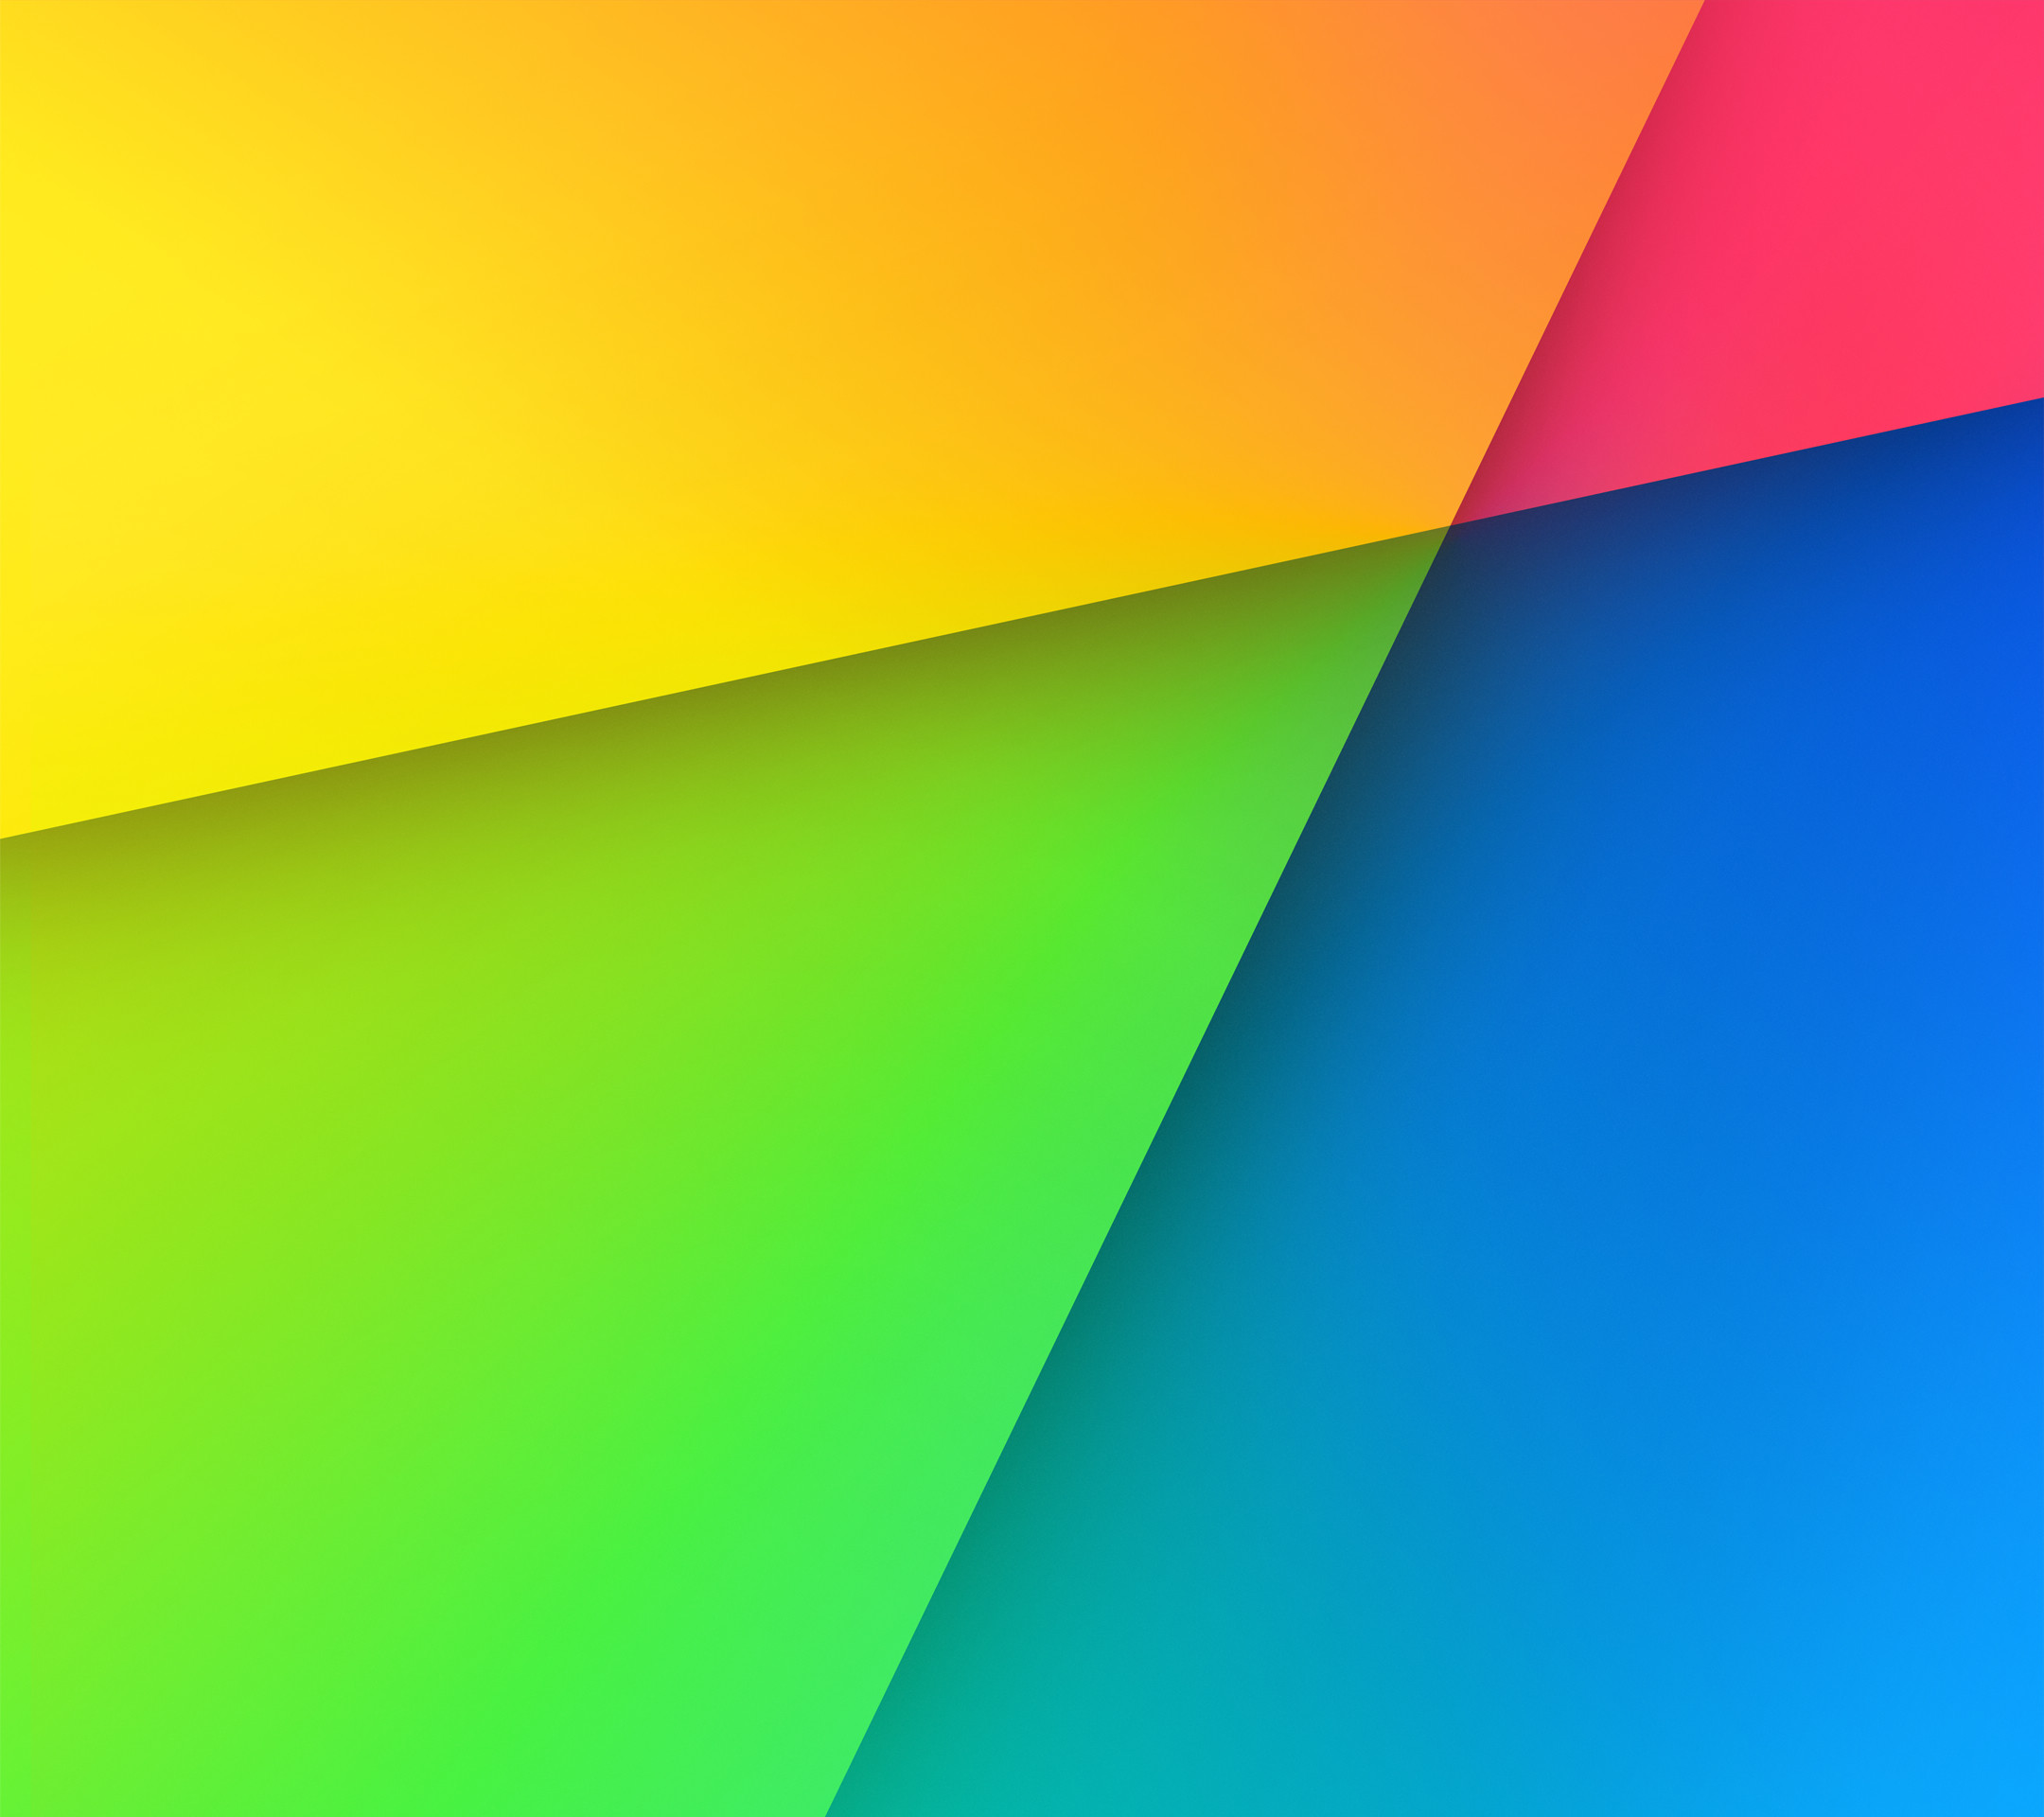 Download New Nexus 7 and Android 4.3 Wallpapers. [HD] | AxeeTech